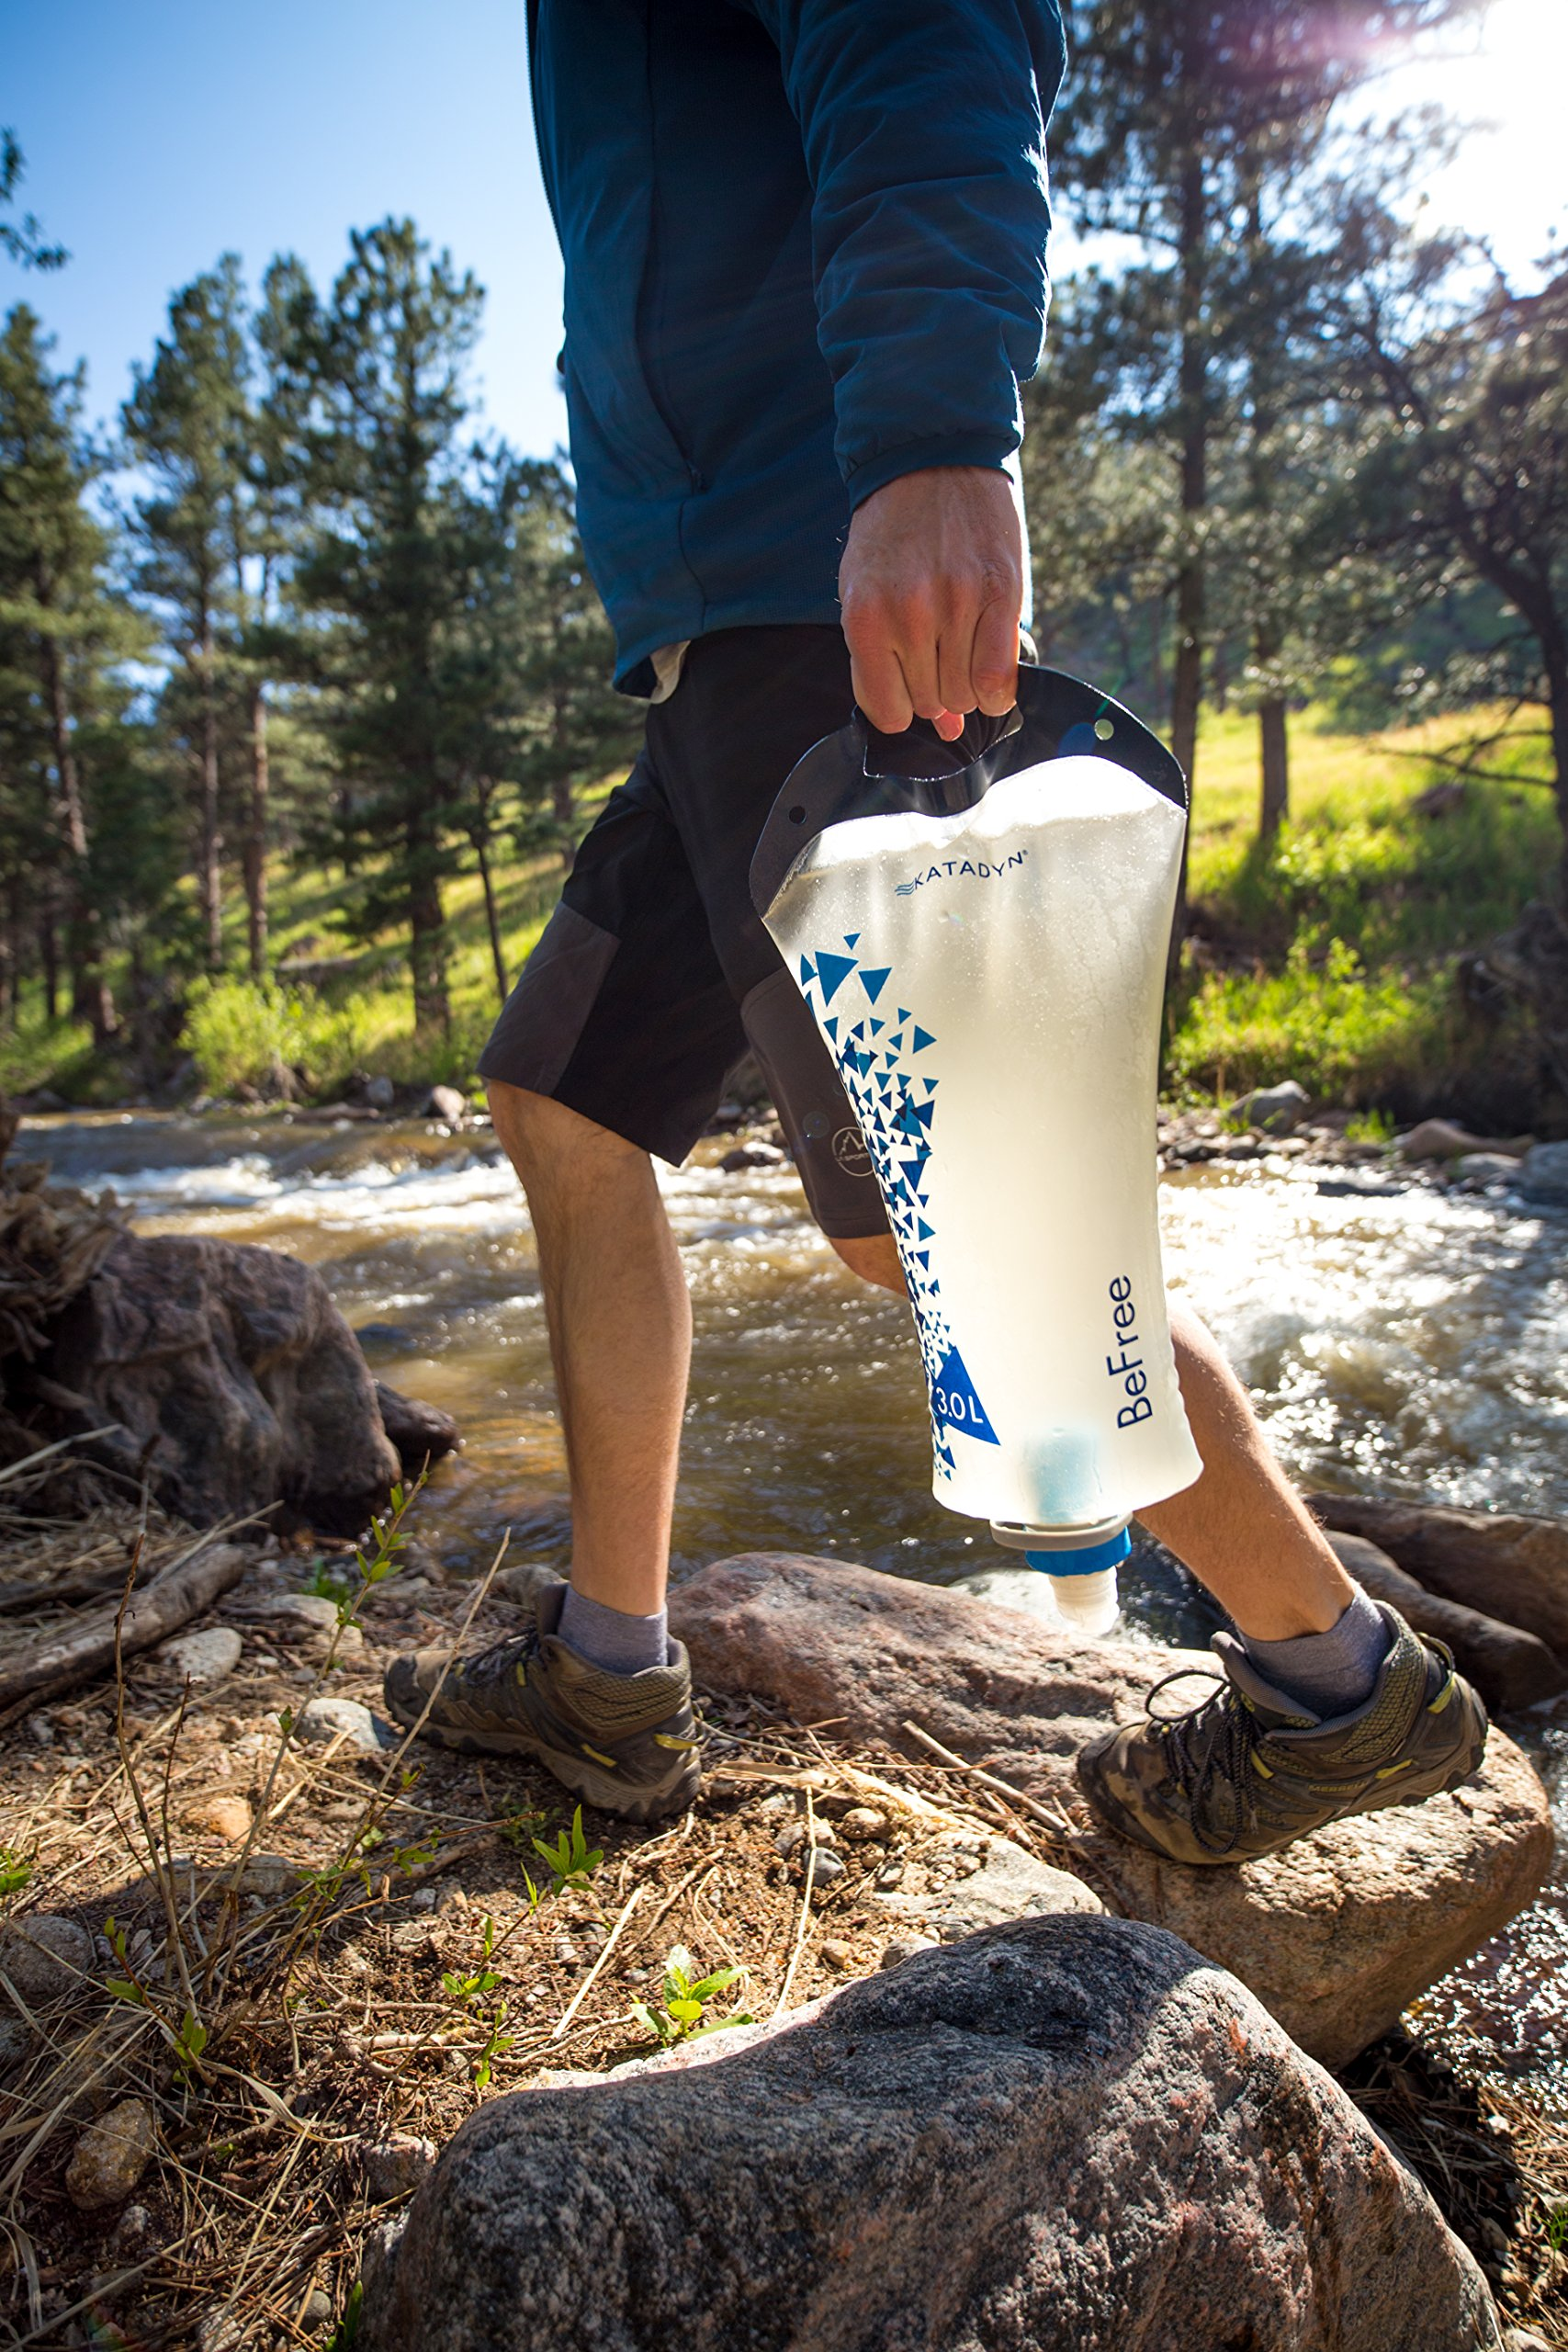 Katadyn BeFree 3.0L Water Filter, Fast Flow, 0.1 Micron EZ Clean Membrane for Personal or Small Group Camping, Backpacking or Emergency Preparedness by Katadyn (Image #3)